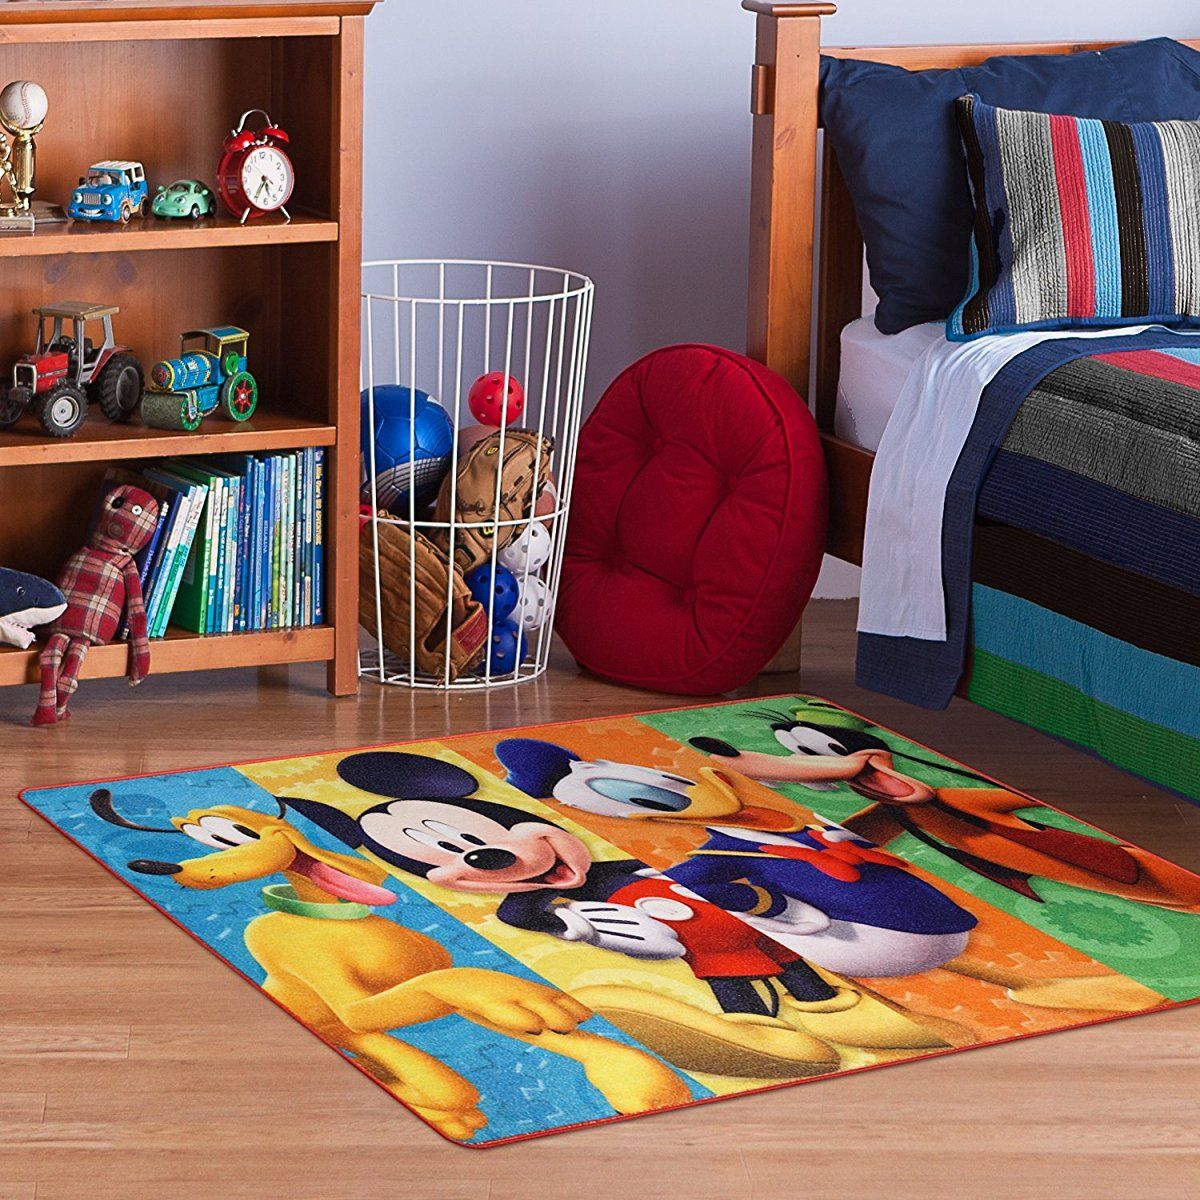 Disney Mickey Mouse Clubhouse Rug Hd Digital Mmch Kids Room Decor Bedding Area Rugs 40 X54 Standard Childrens Bedroom Rug Kid Room Decor Carpets For Kids